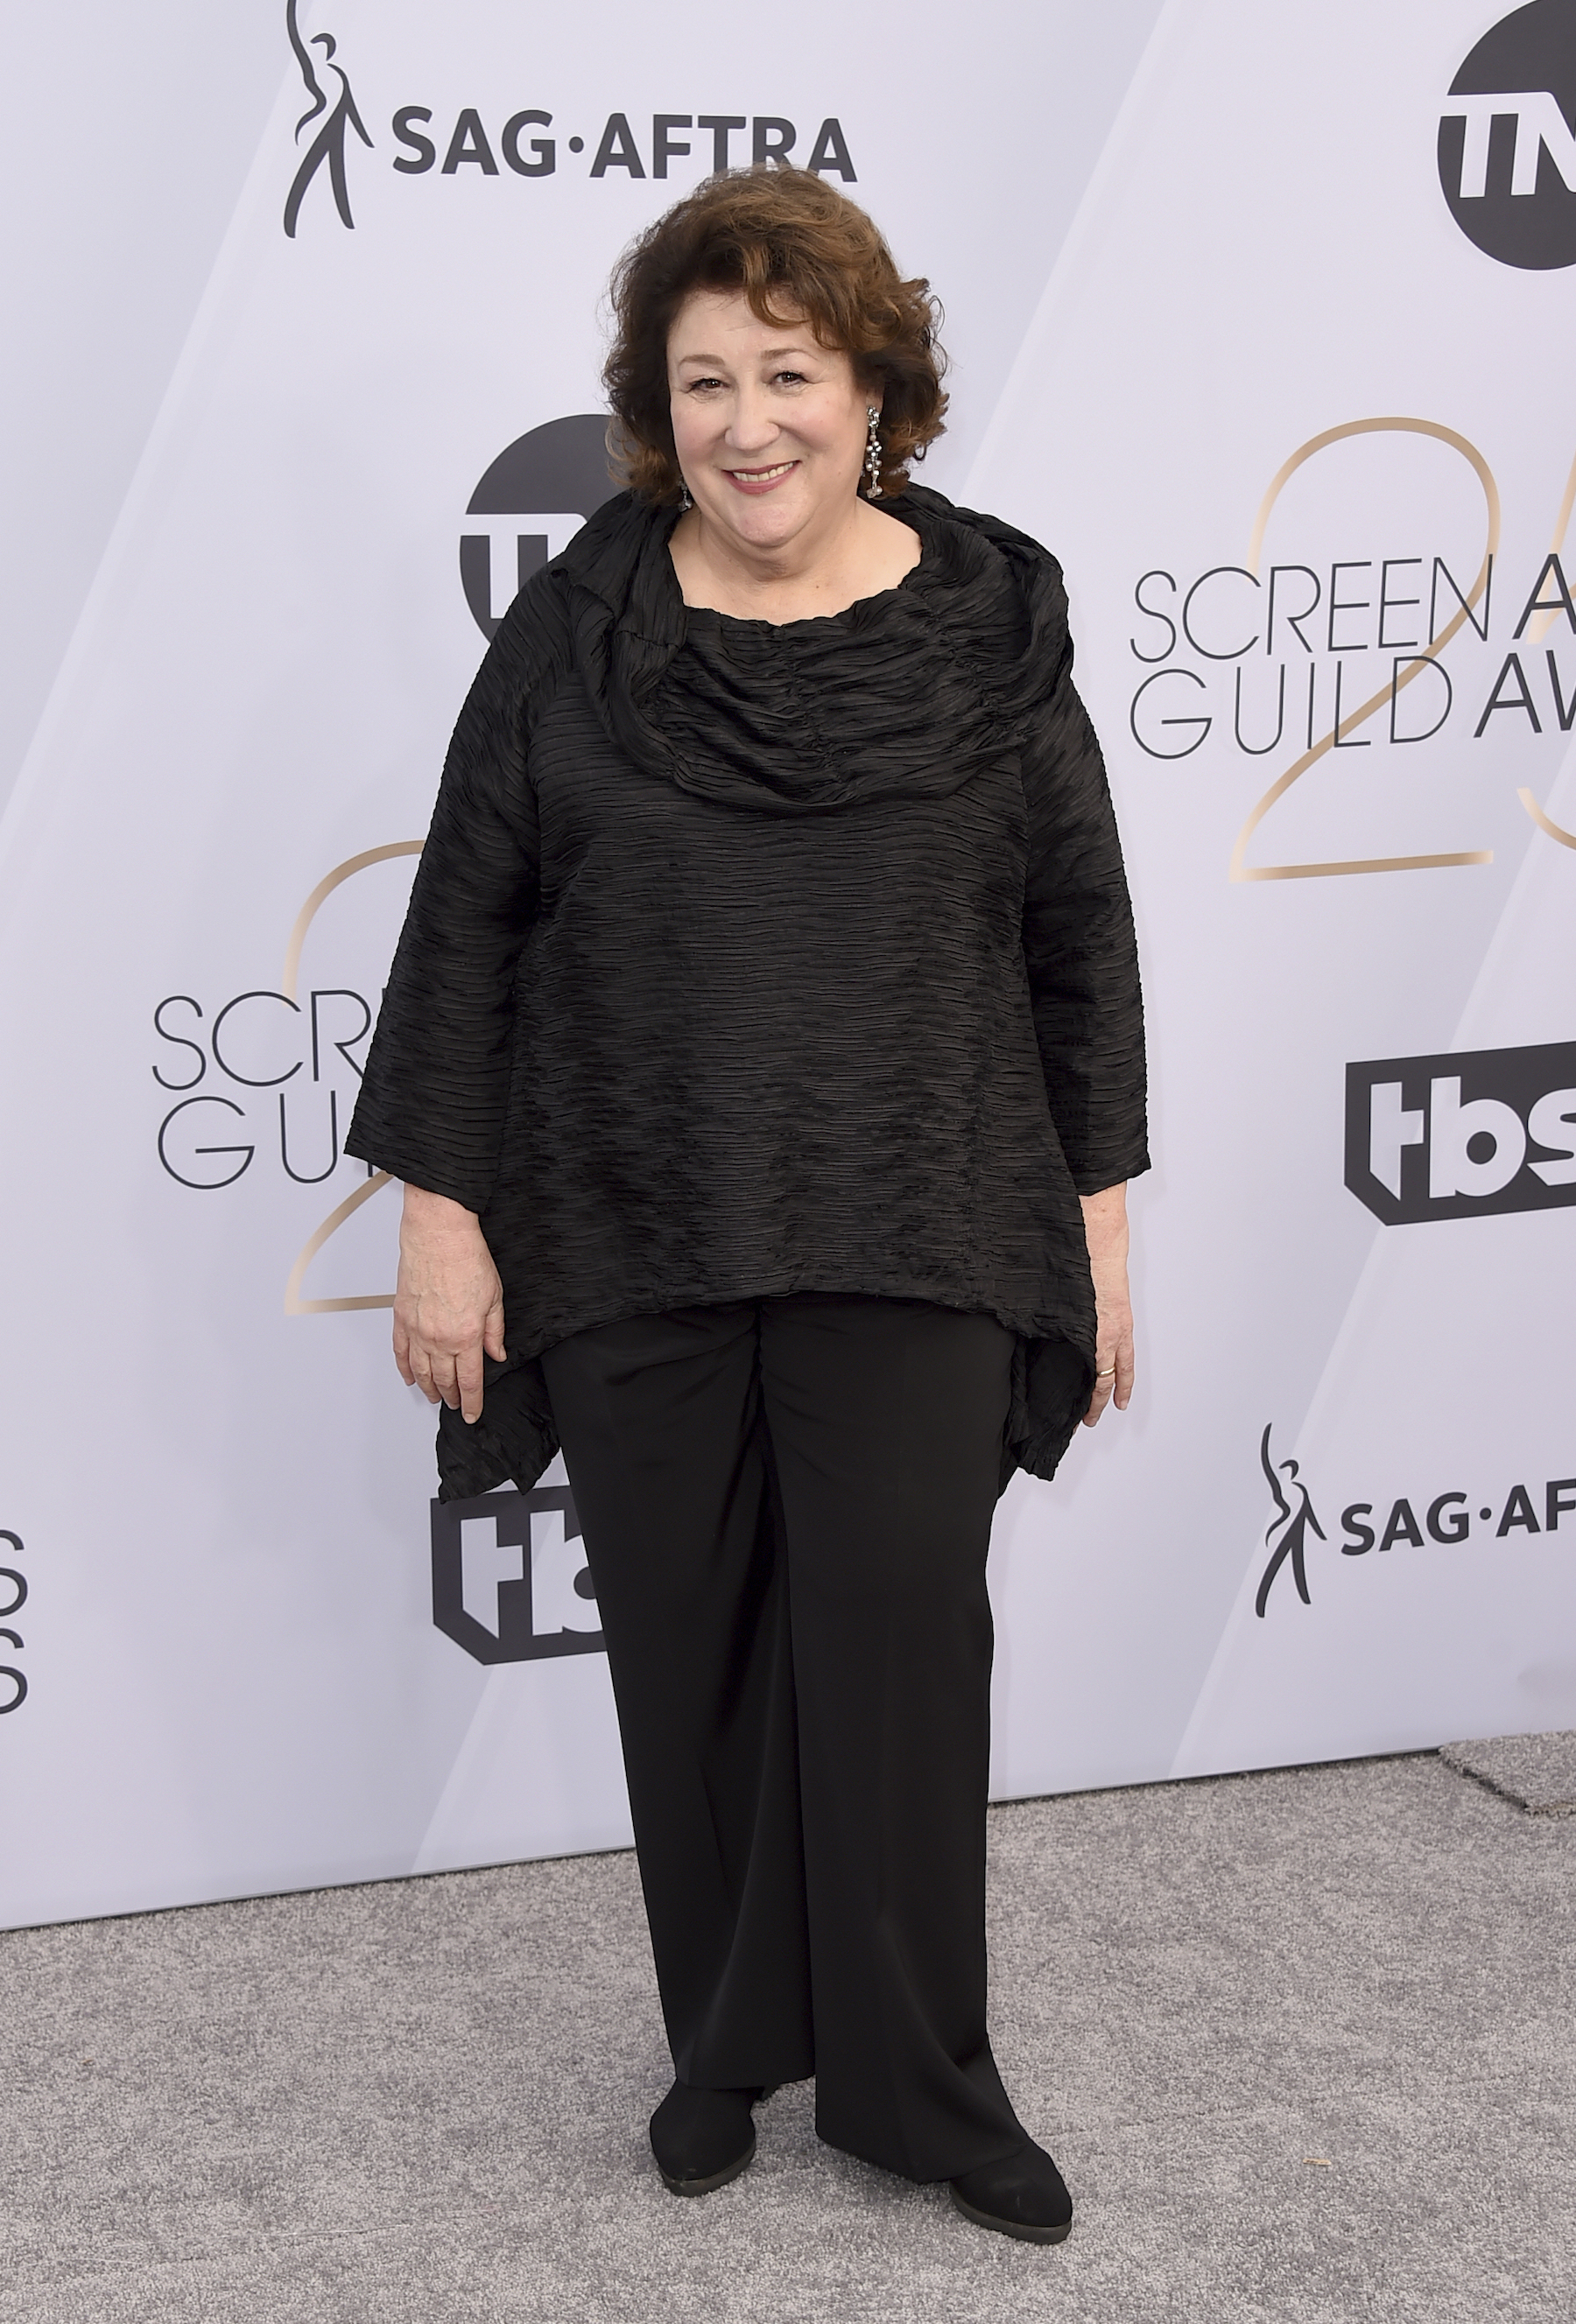 <div class='meta'><div class='origin-logo' data-origin='AP'></div><span class='caption-text' data-credit='Jordan Strauss/Invision/AP'>Margo Martindale arrives at the 25th annual Screen Actors Guild Awards at the Shrine Auditorium & Expo Hall on Sunday, Jan. 27, 2019, in Los Angeles.</span></div>